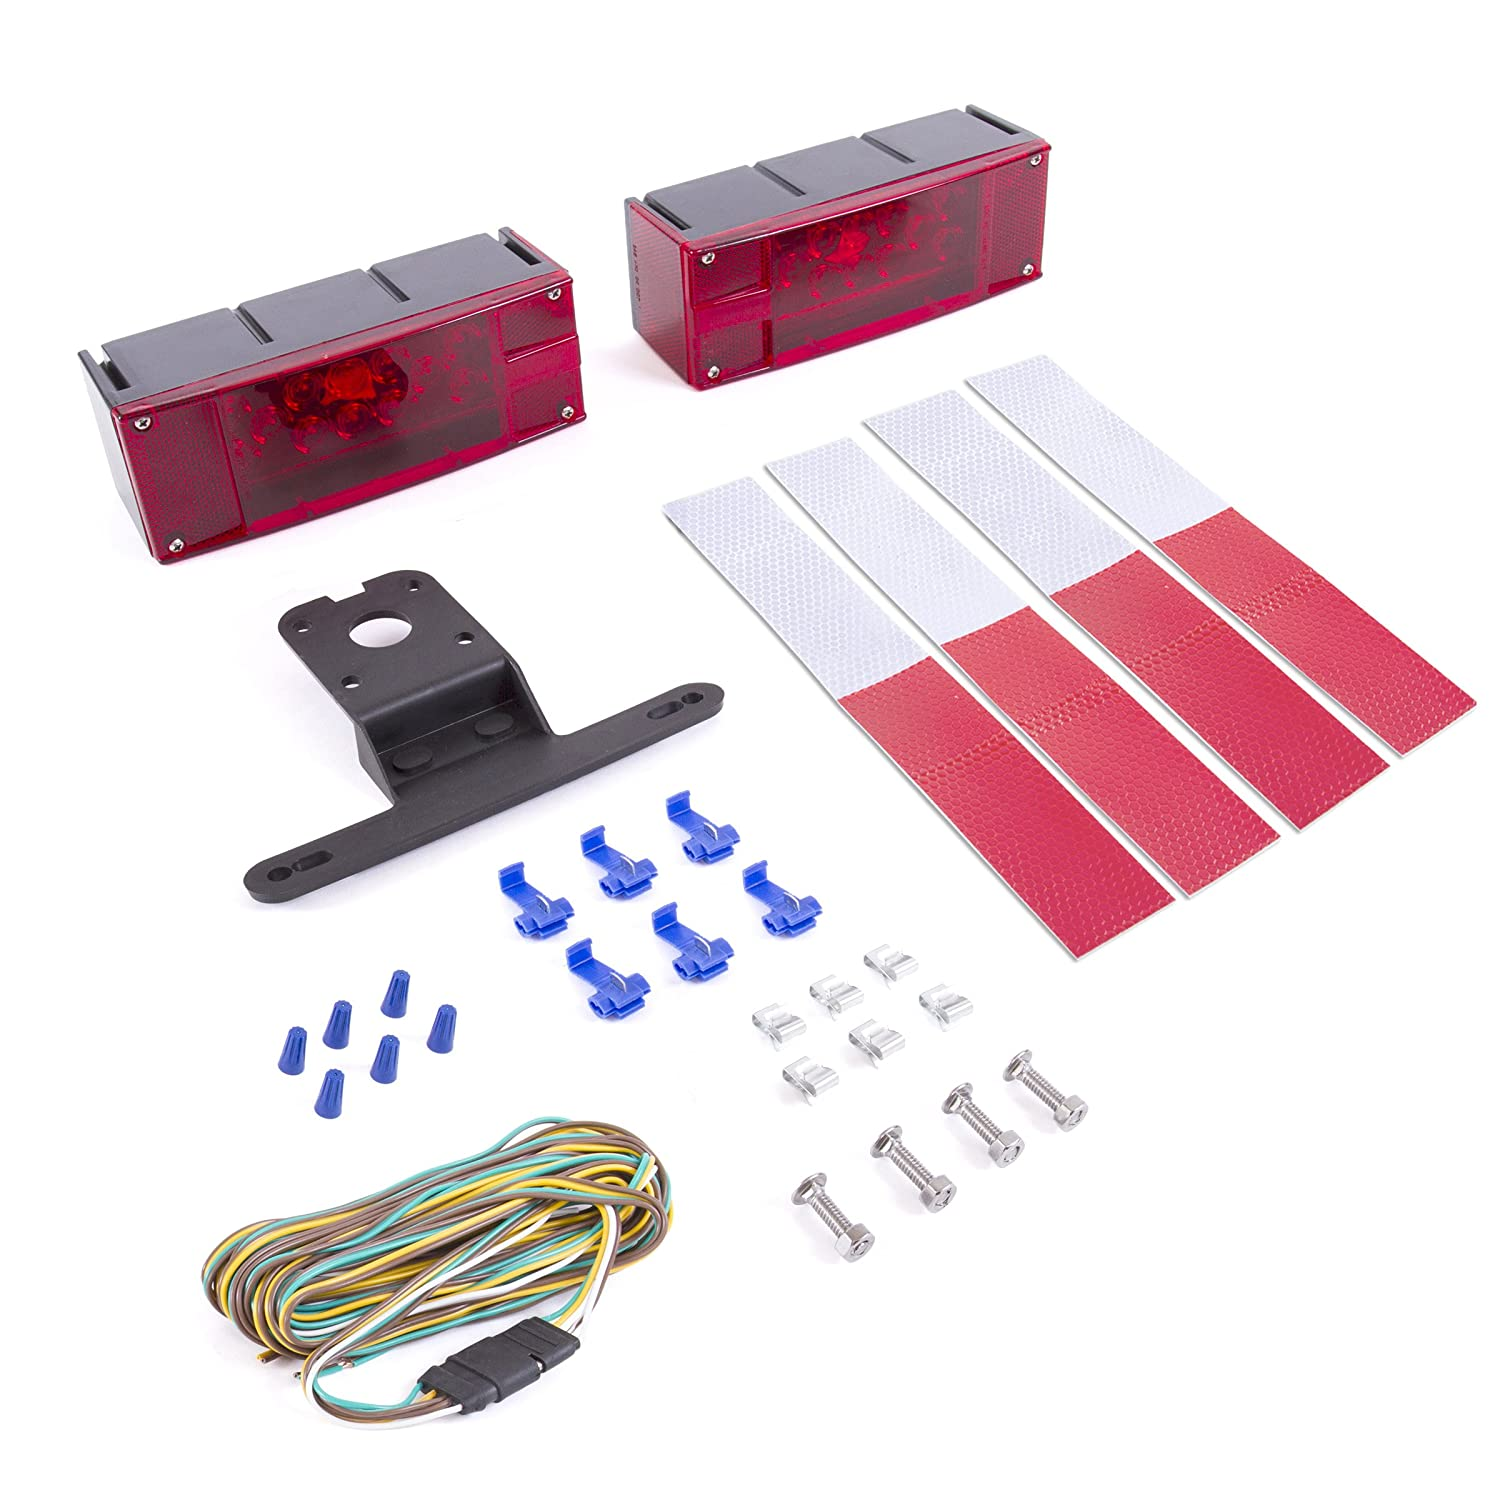 Wellmax 12v Led Trailer Light Kit Utility Bulbs For Wiring Easy Travel Assembly Attachable Tail Lights Rv Marine Boat Camper Low